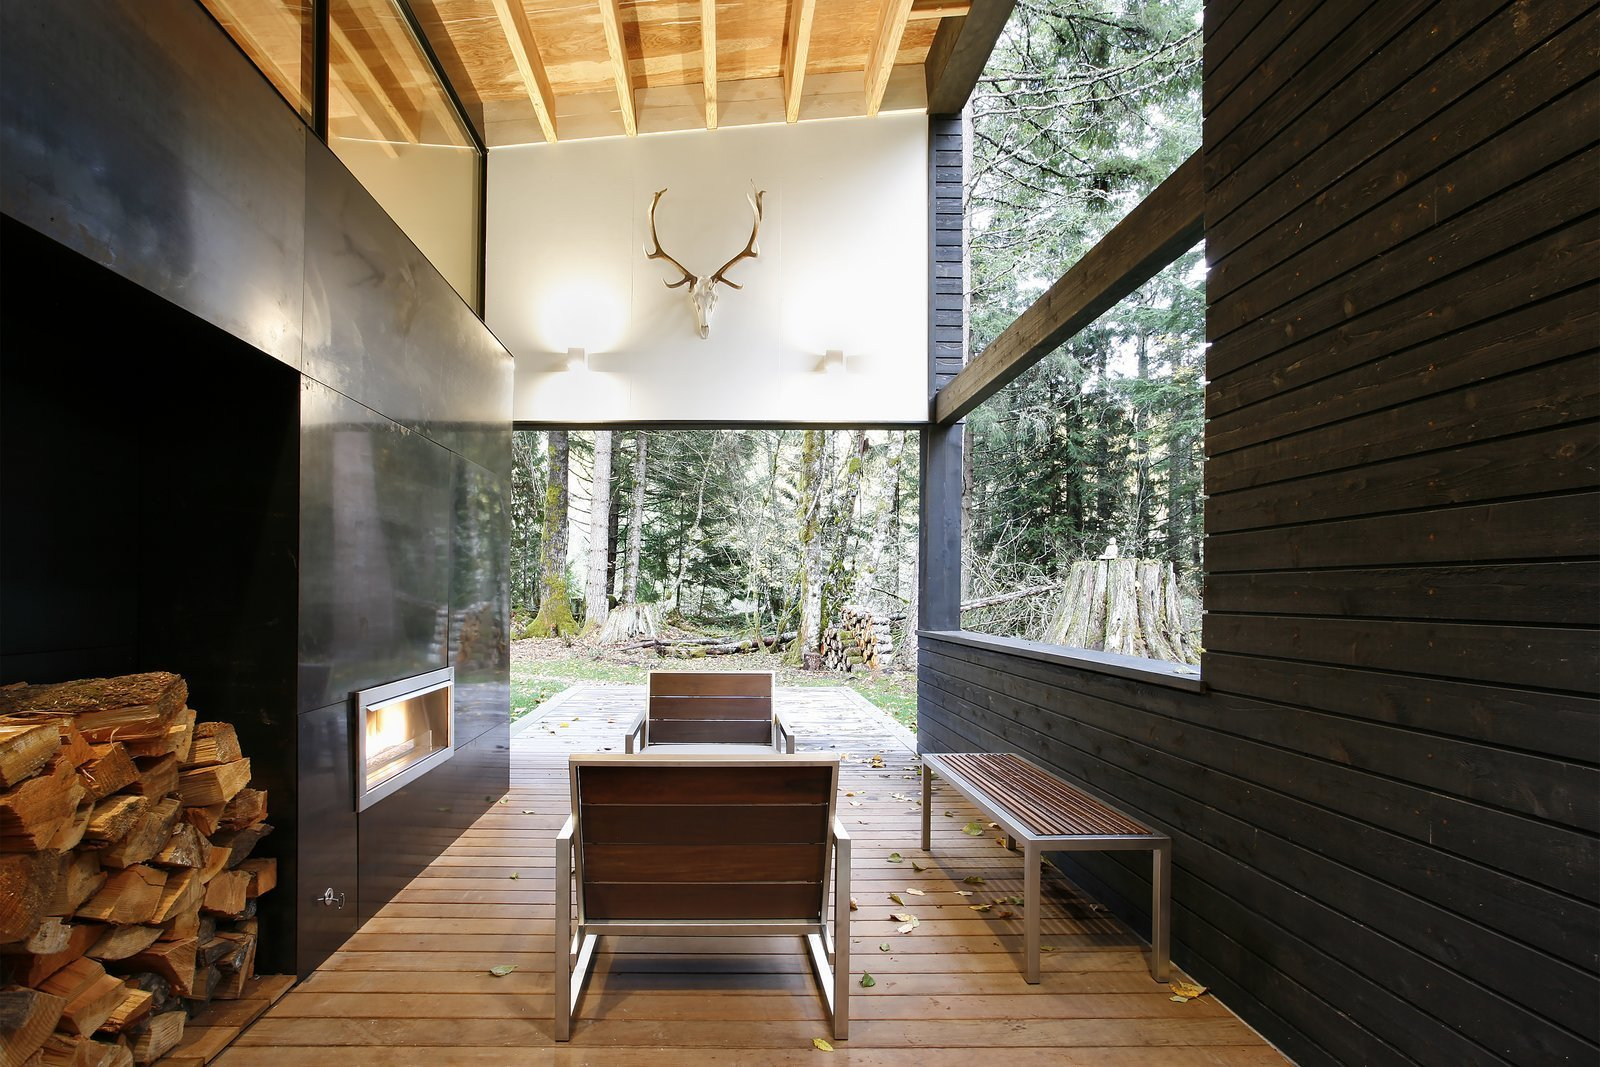 In Greenwater, Washington, a courtyard house on a river was designed with a steel-clad fireplace mass that separates the living room from a covered outdoor patio.